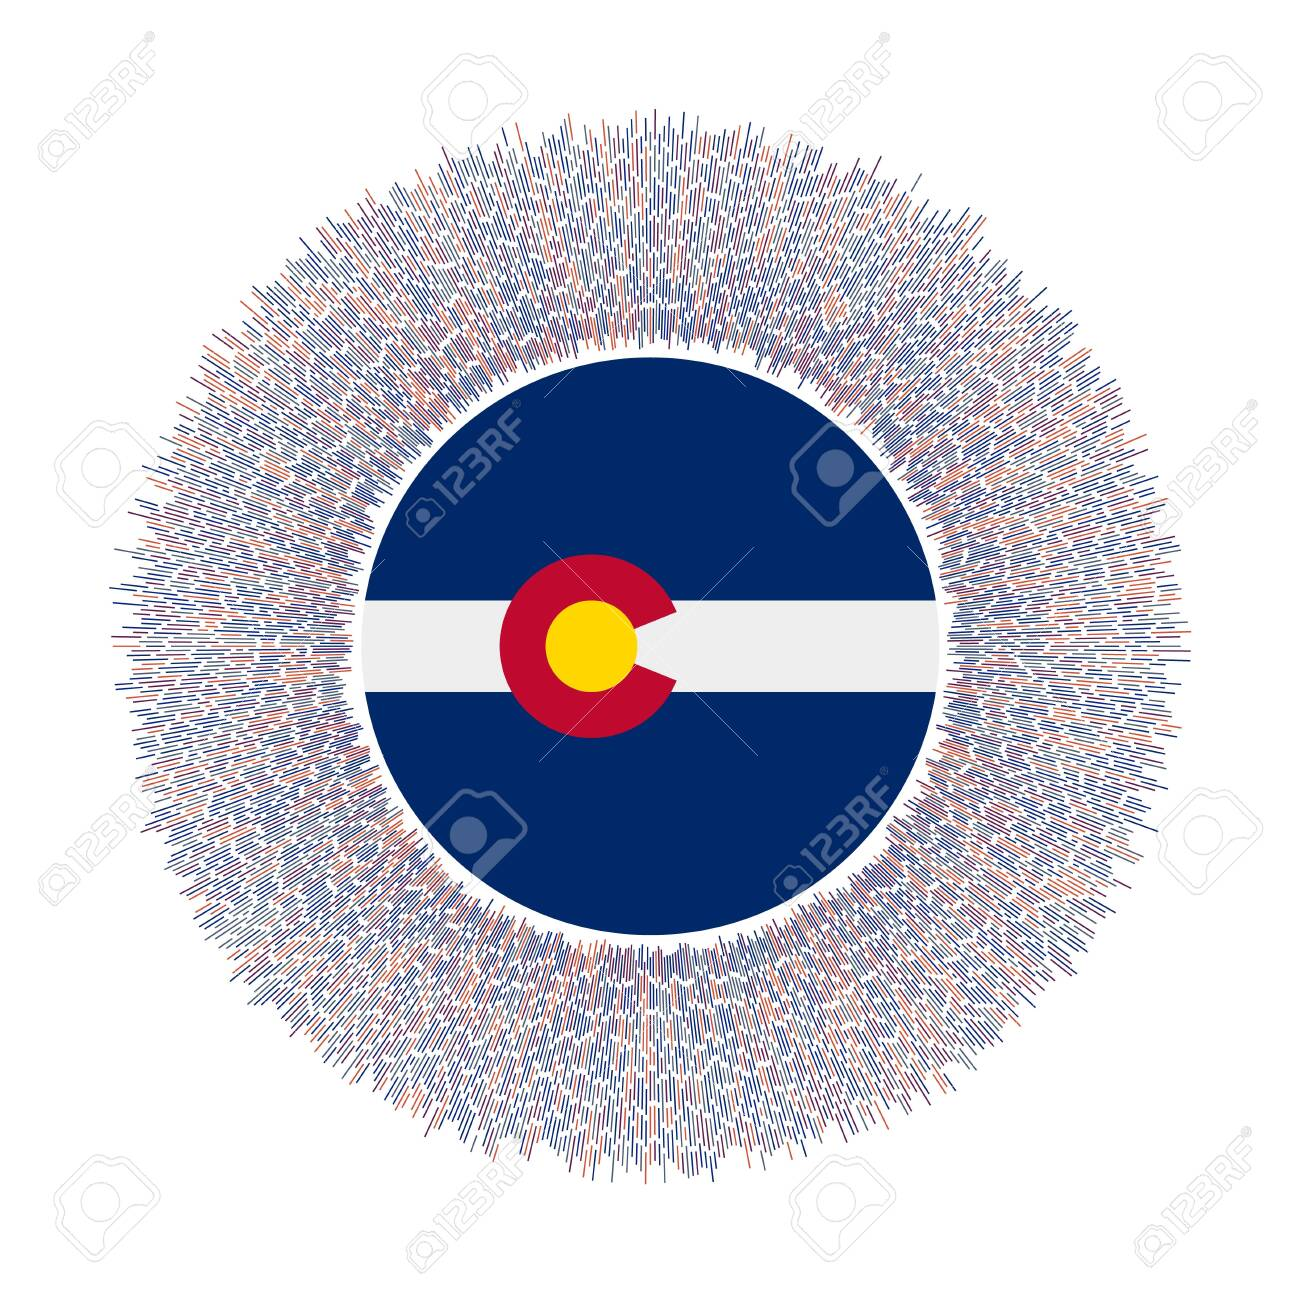 Flag of Colorado with colorful rays. Radiant us state sign. Shiny sunburst with Colorado flag. Appealing vector illustration. - 139501469